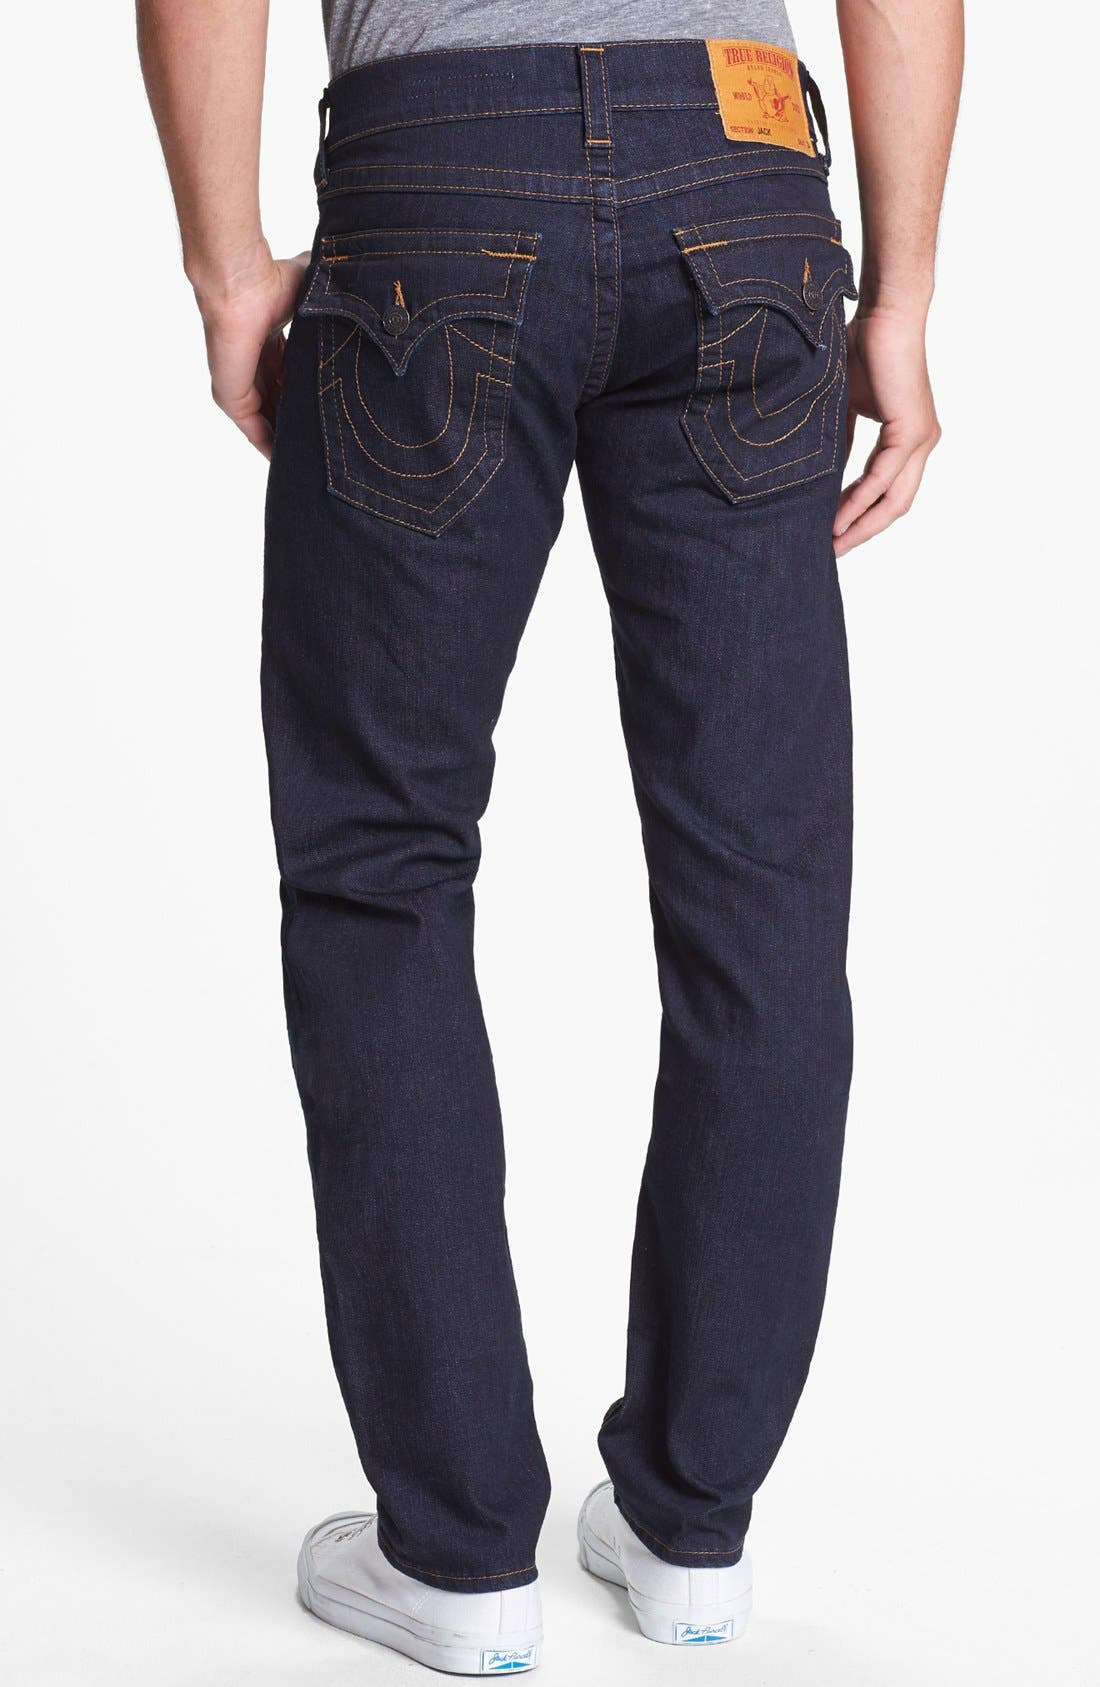 Main Image - True Religion Brand Jeans 'Jack' Slim Fit Jeans (Midnight Blue)